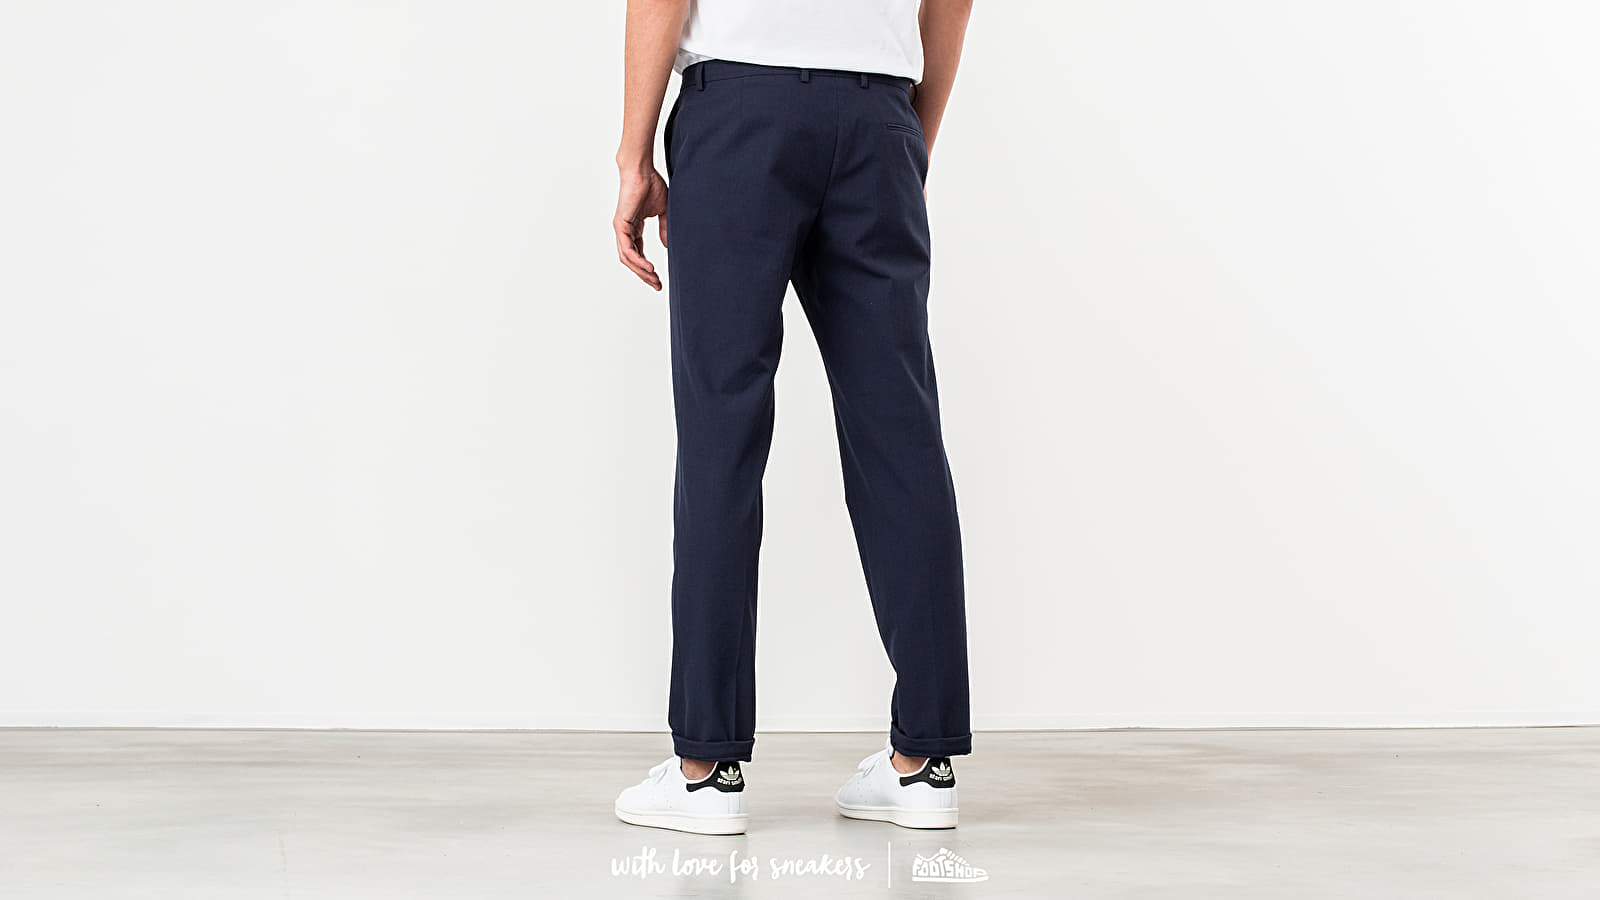 a07bb4032de5 MAISON KITSUNÉ Small Check Classic Fit Pants Navy Check at a great price   288 buy at